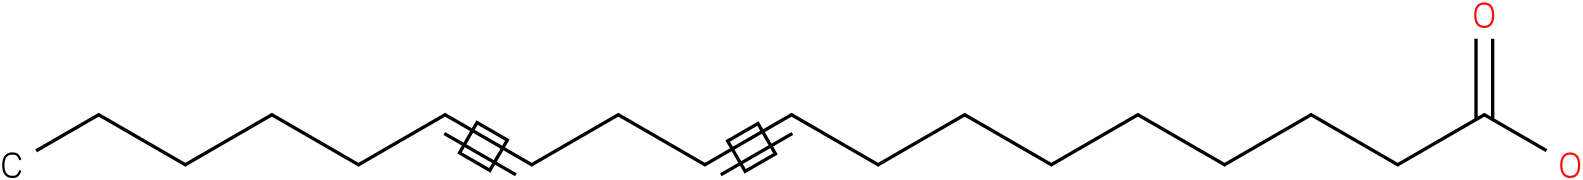 9,12-OCTADECADIENOIC ACID